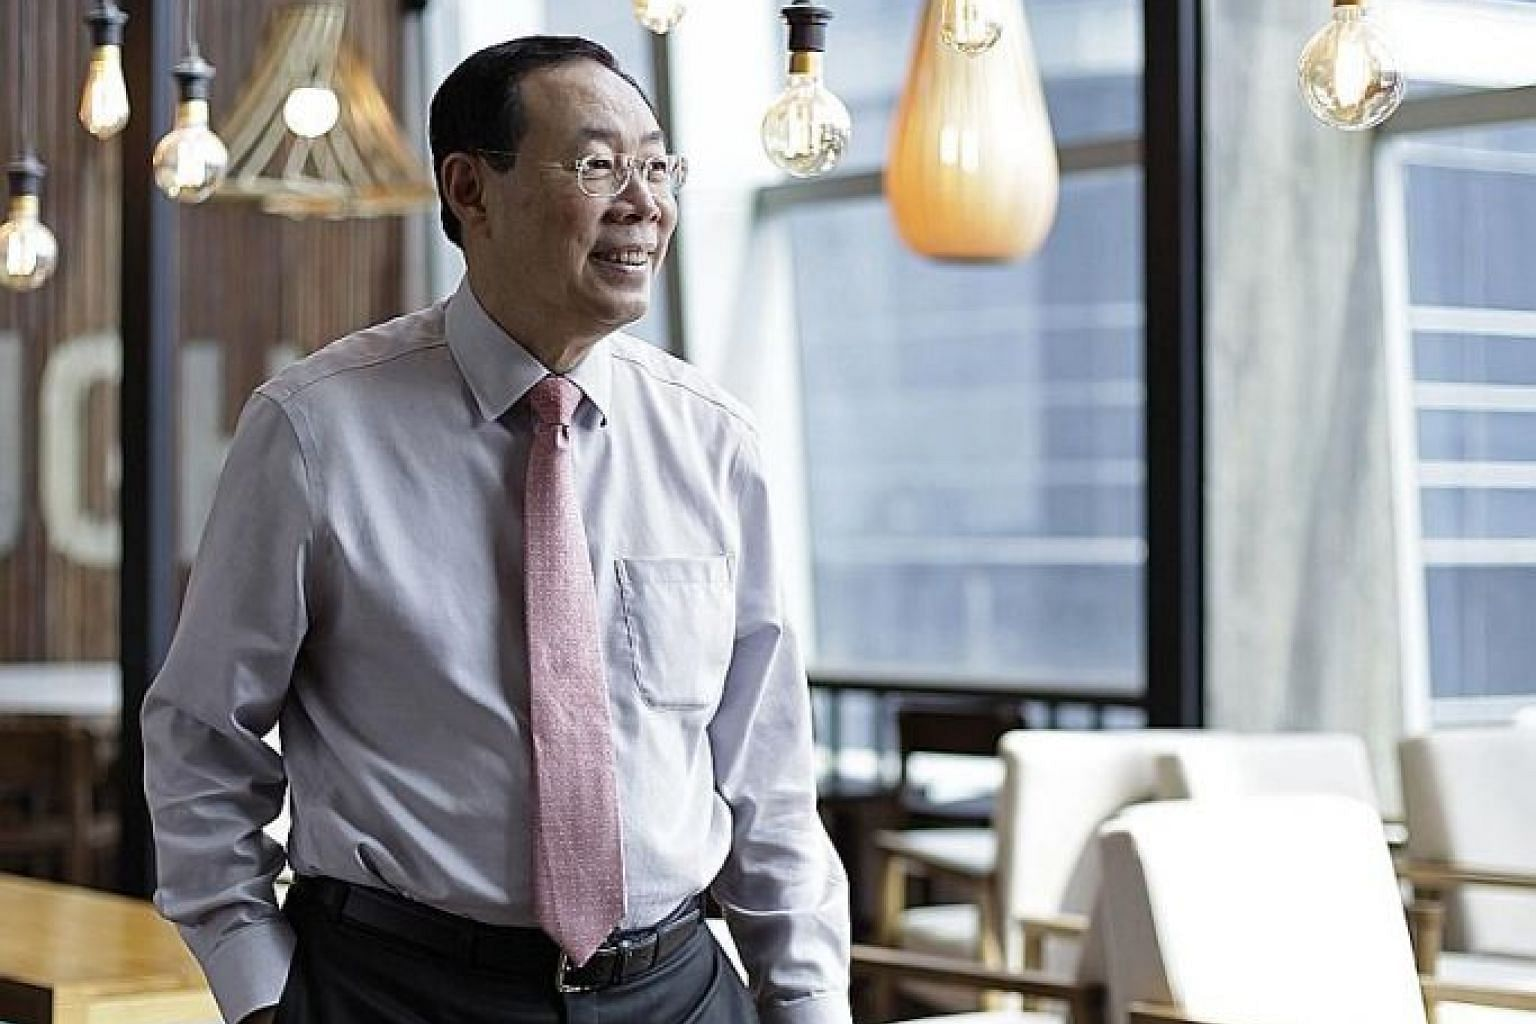 Although Mr Seck Wai Kwong had a degree in econometrics, he started his civil service career with the Ministry of Home Affairs, before going on to work at the Monetary Authority of Singapore and GIC with the likes of Dr Goh Keng Swee and Mr J. Y. Pil